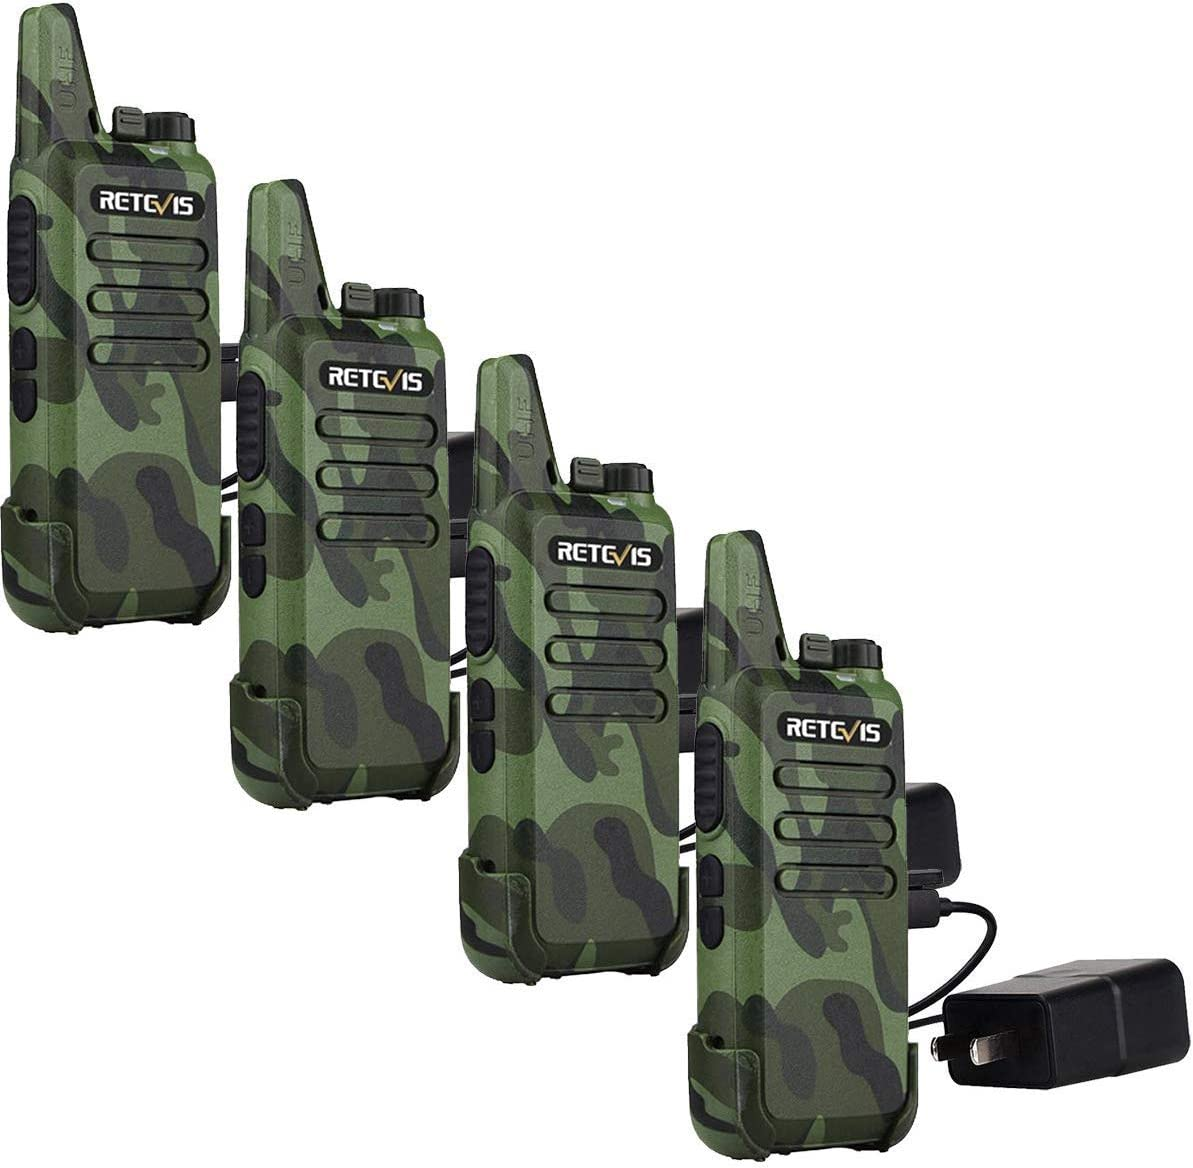 Retevis RT22 Walkie Talkies Rechargeable Voice Activated Scan Emergency Alarm Outdoor Cruise Ship Walkie Talkies Two Way Radio 4 Pack